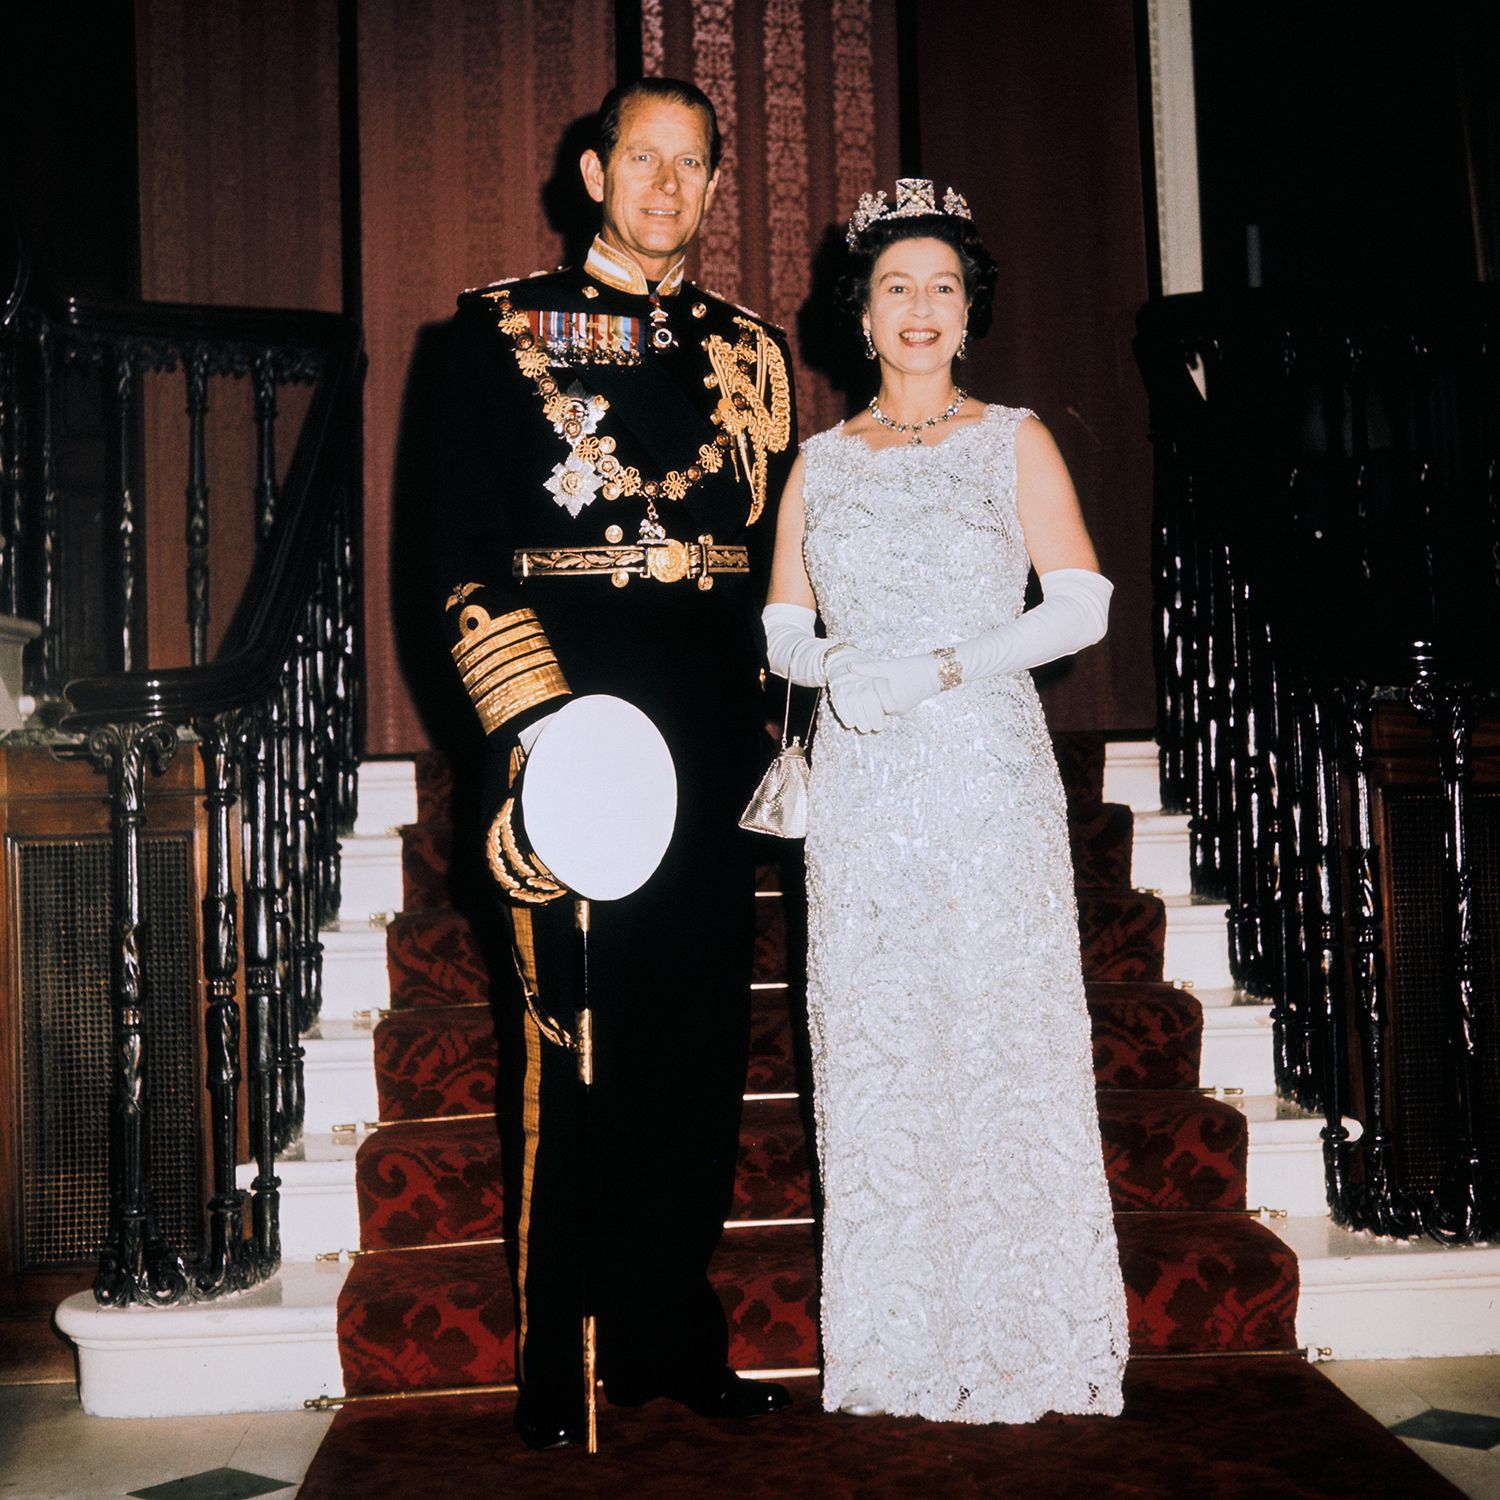 How Elizabeth II evolved from an embarrassed bride to a record holder queen